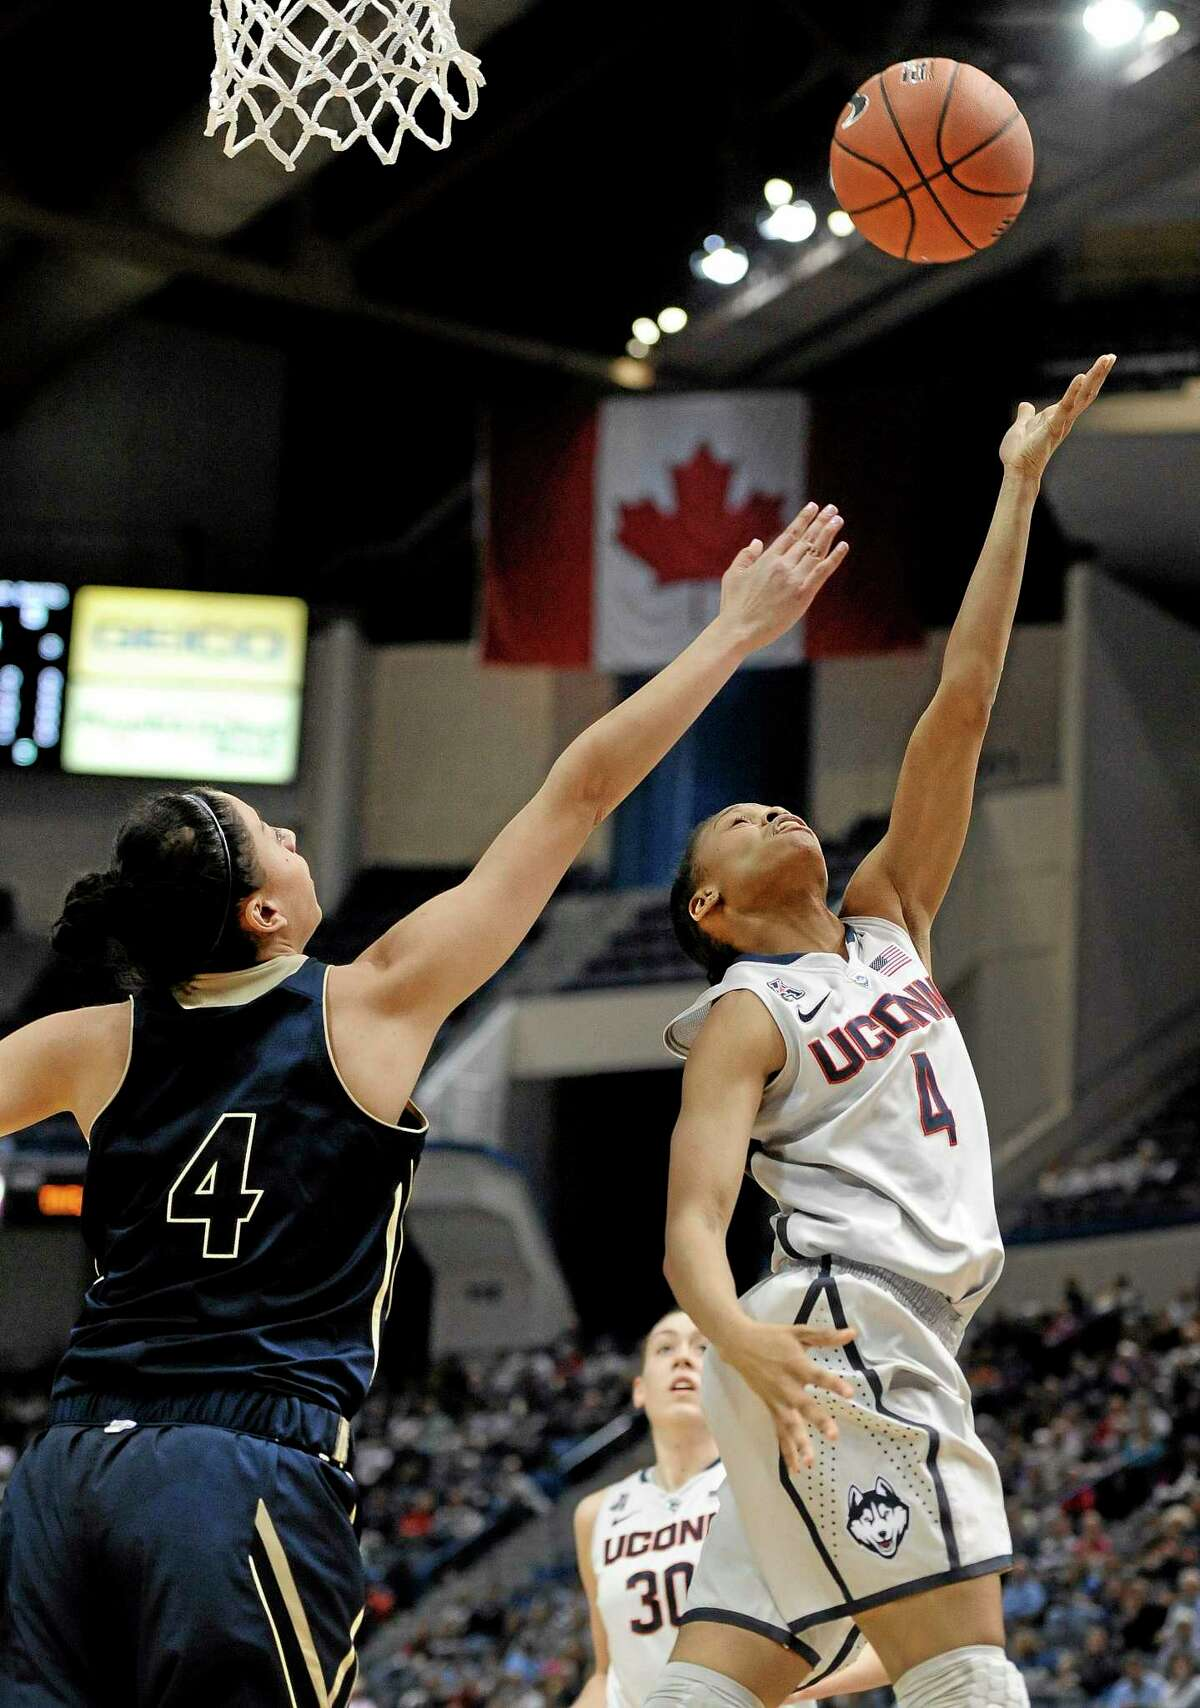 UConn's Moriah Jefferson, right, shoots over UC Davis' Idit Oryon, left, during the first half of Thursday's game in Hartford.